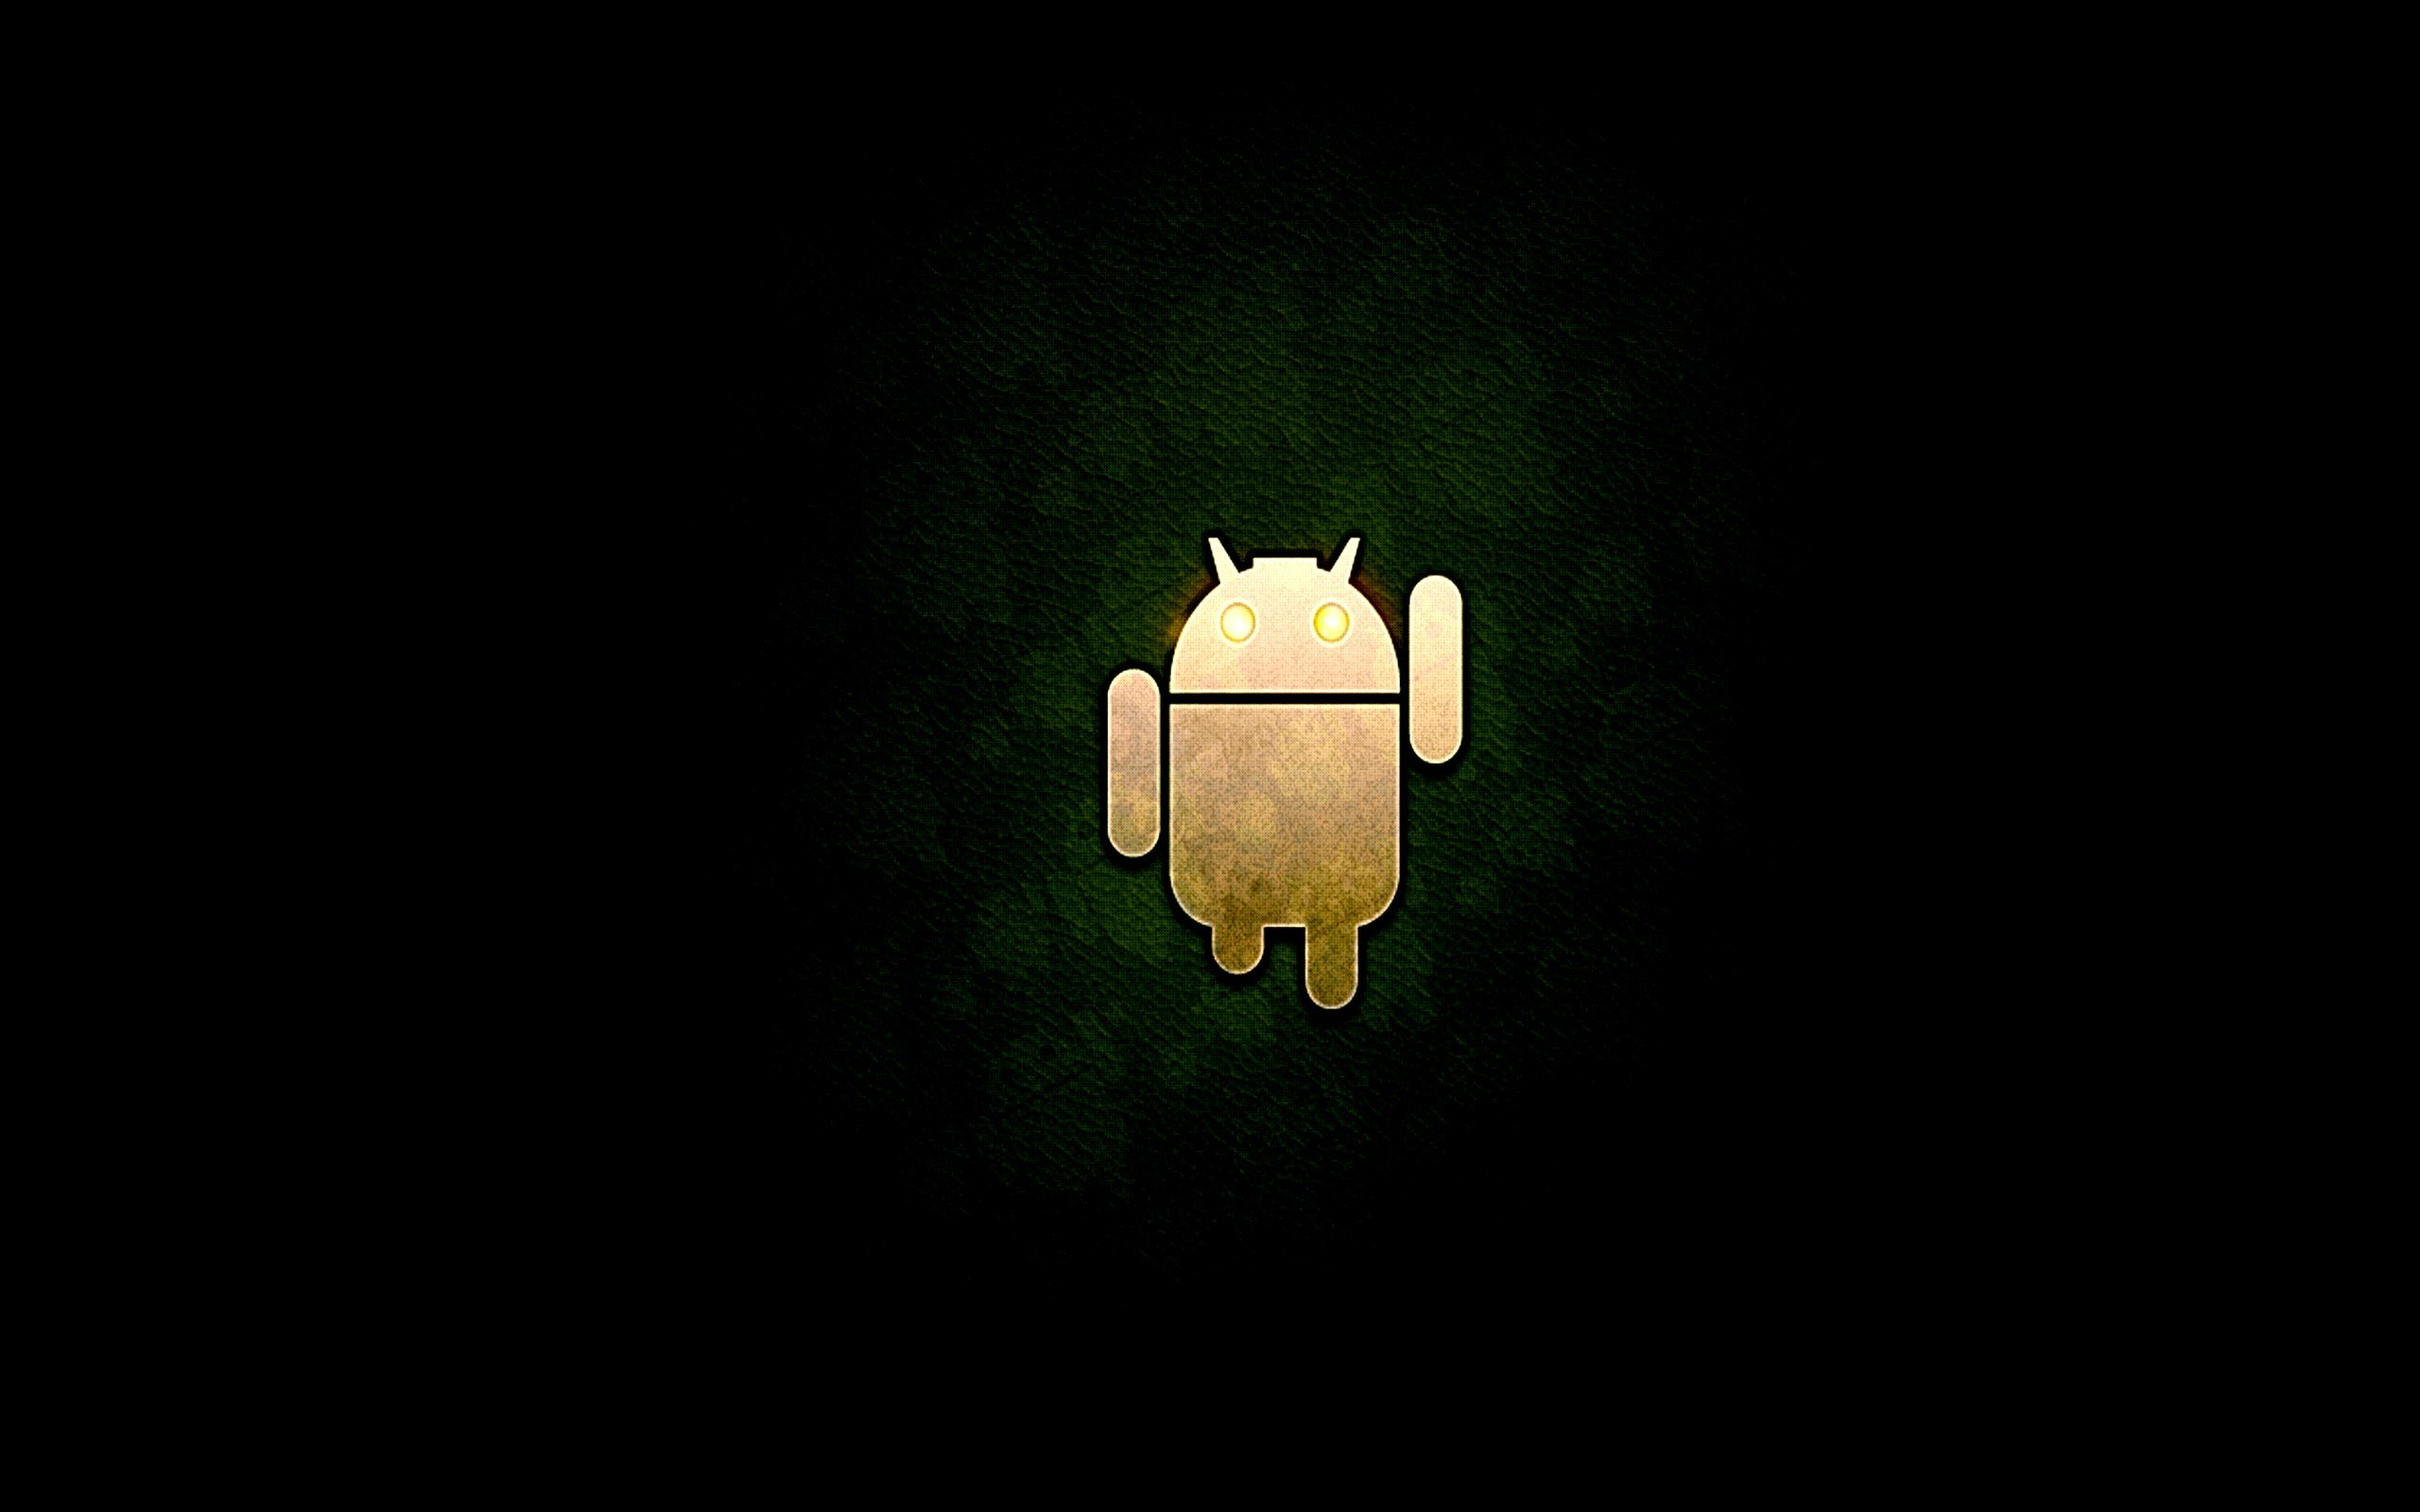 Droid wallpapers hd wallpapersafari - Gold wallpaper for android ...